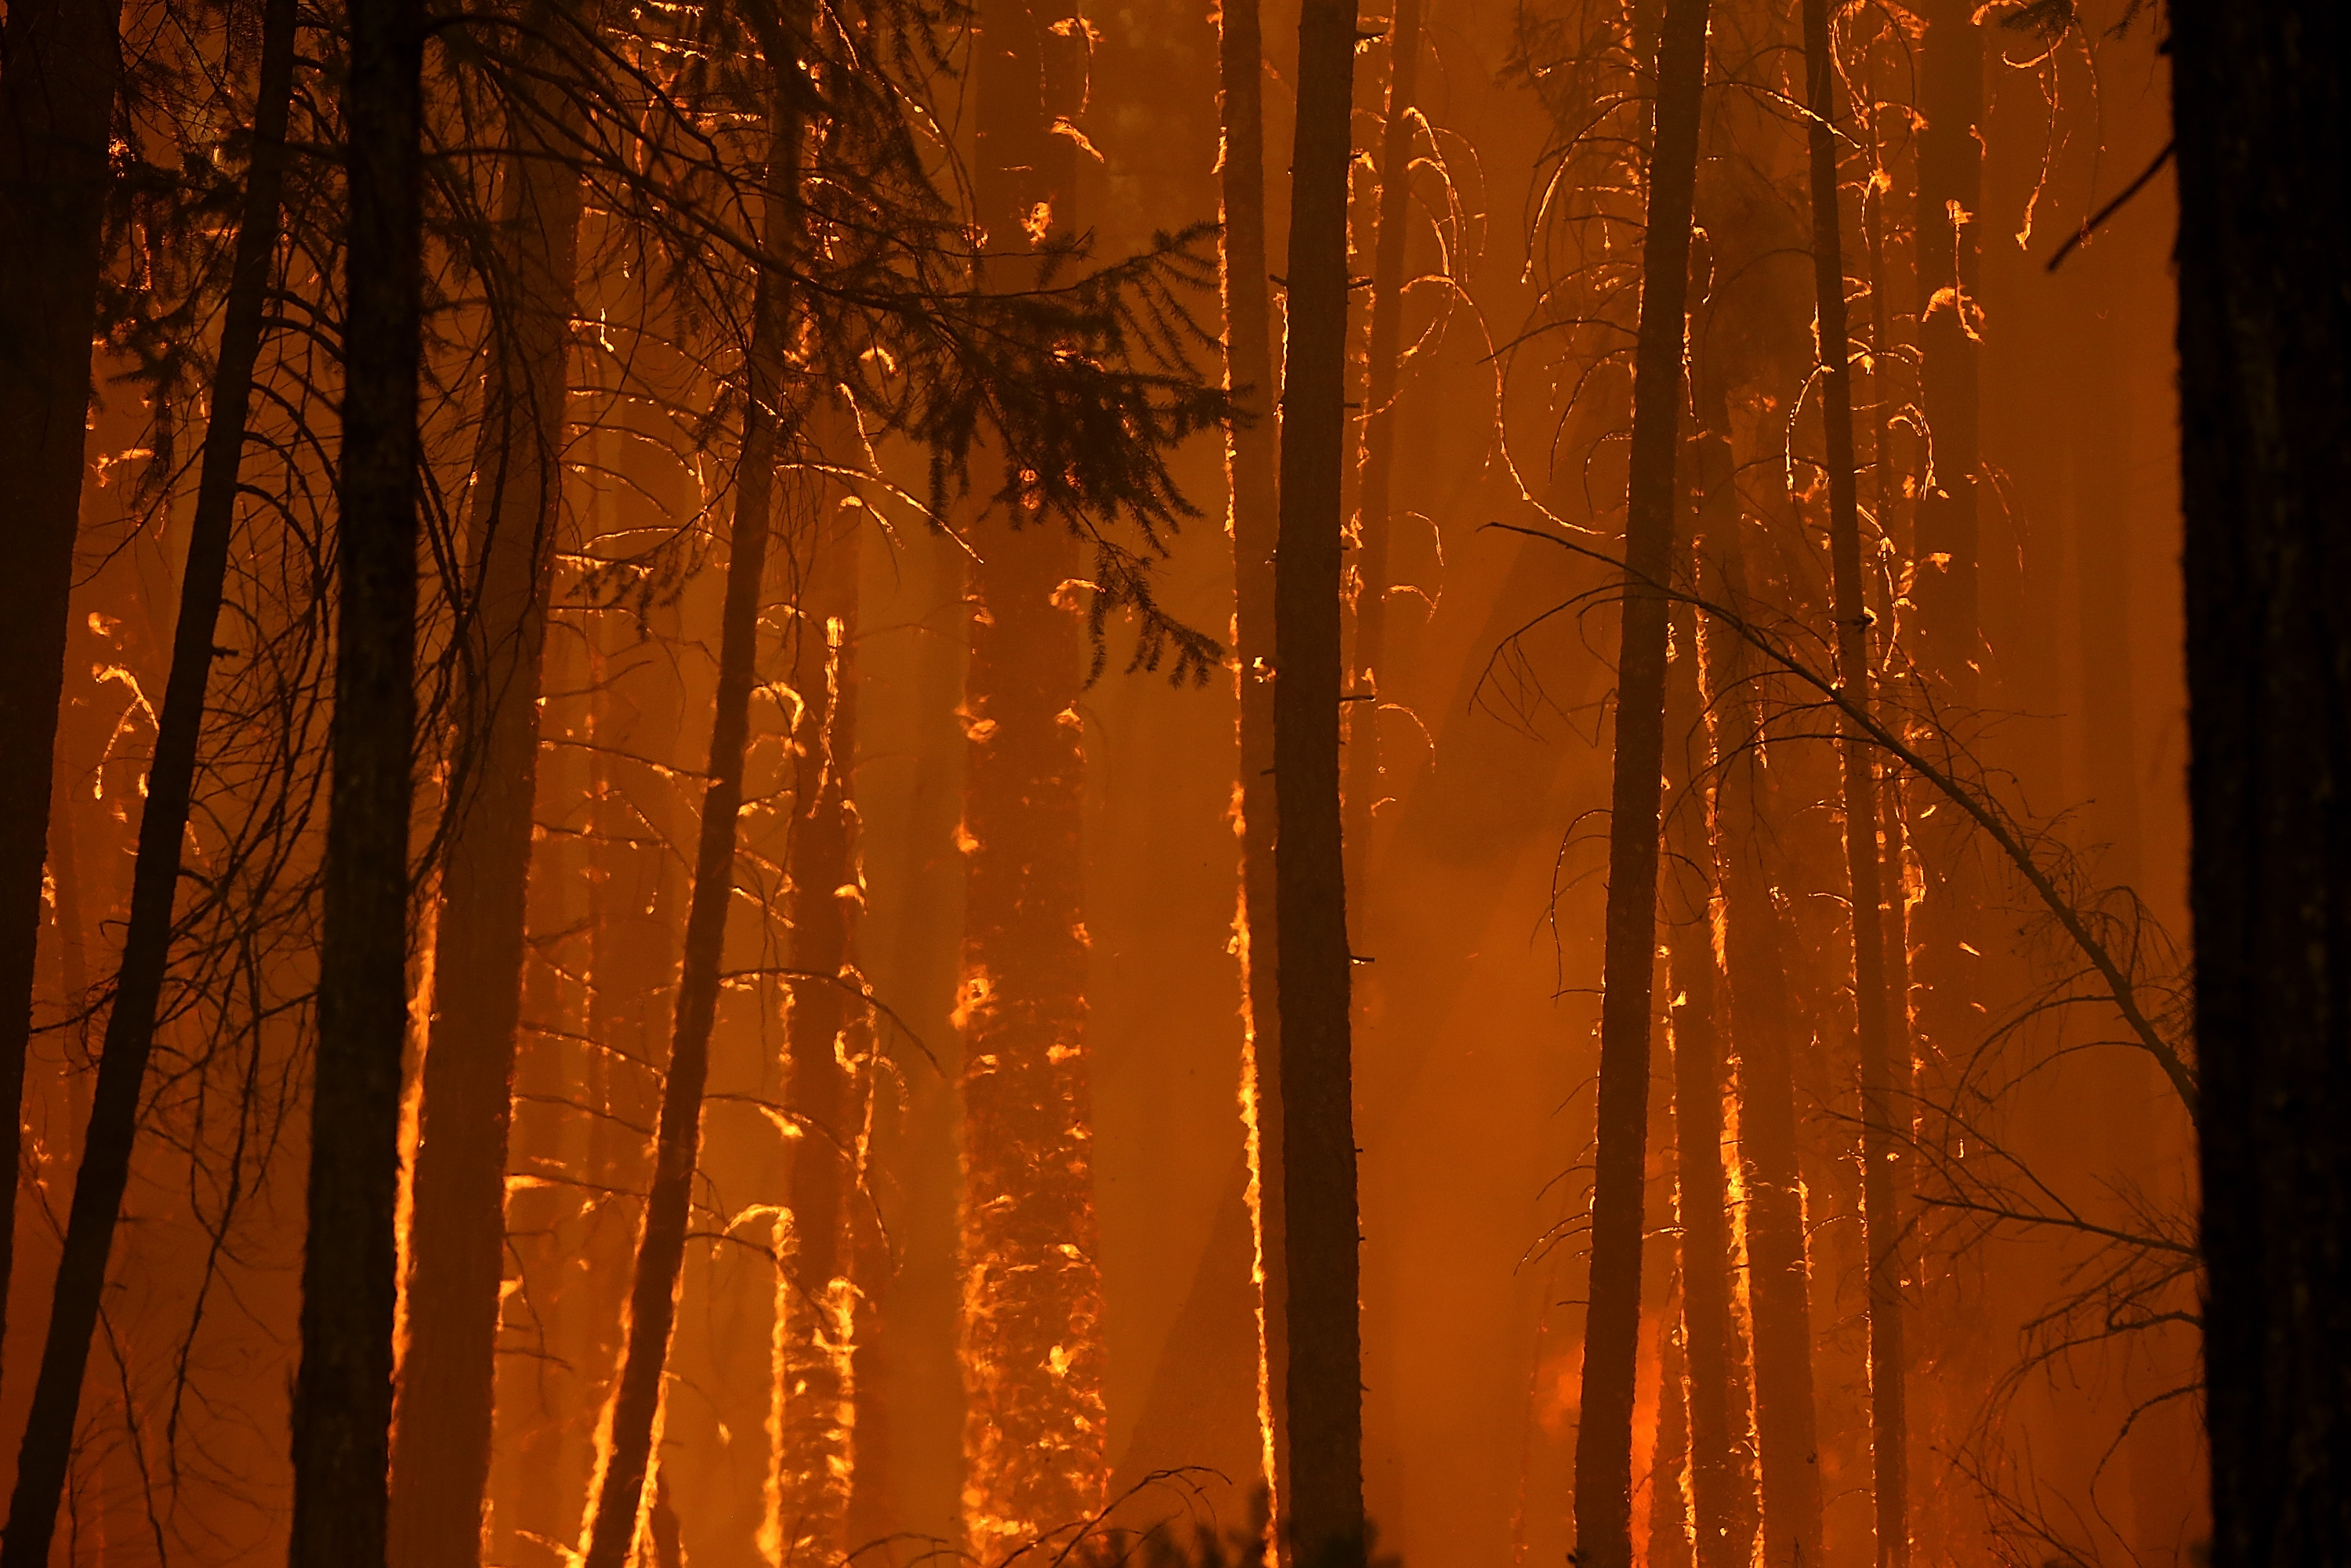 Flames from Rim Fire consume trees on Aug. 25, 2013 near Groveland, California. (Justin Sullivan/Getty Images)